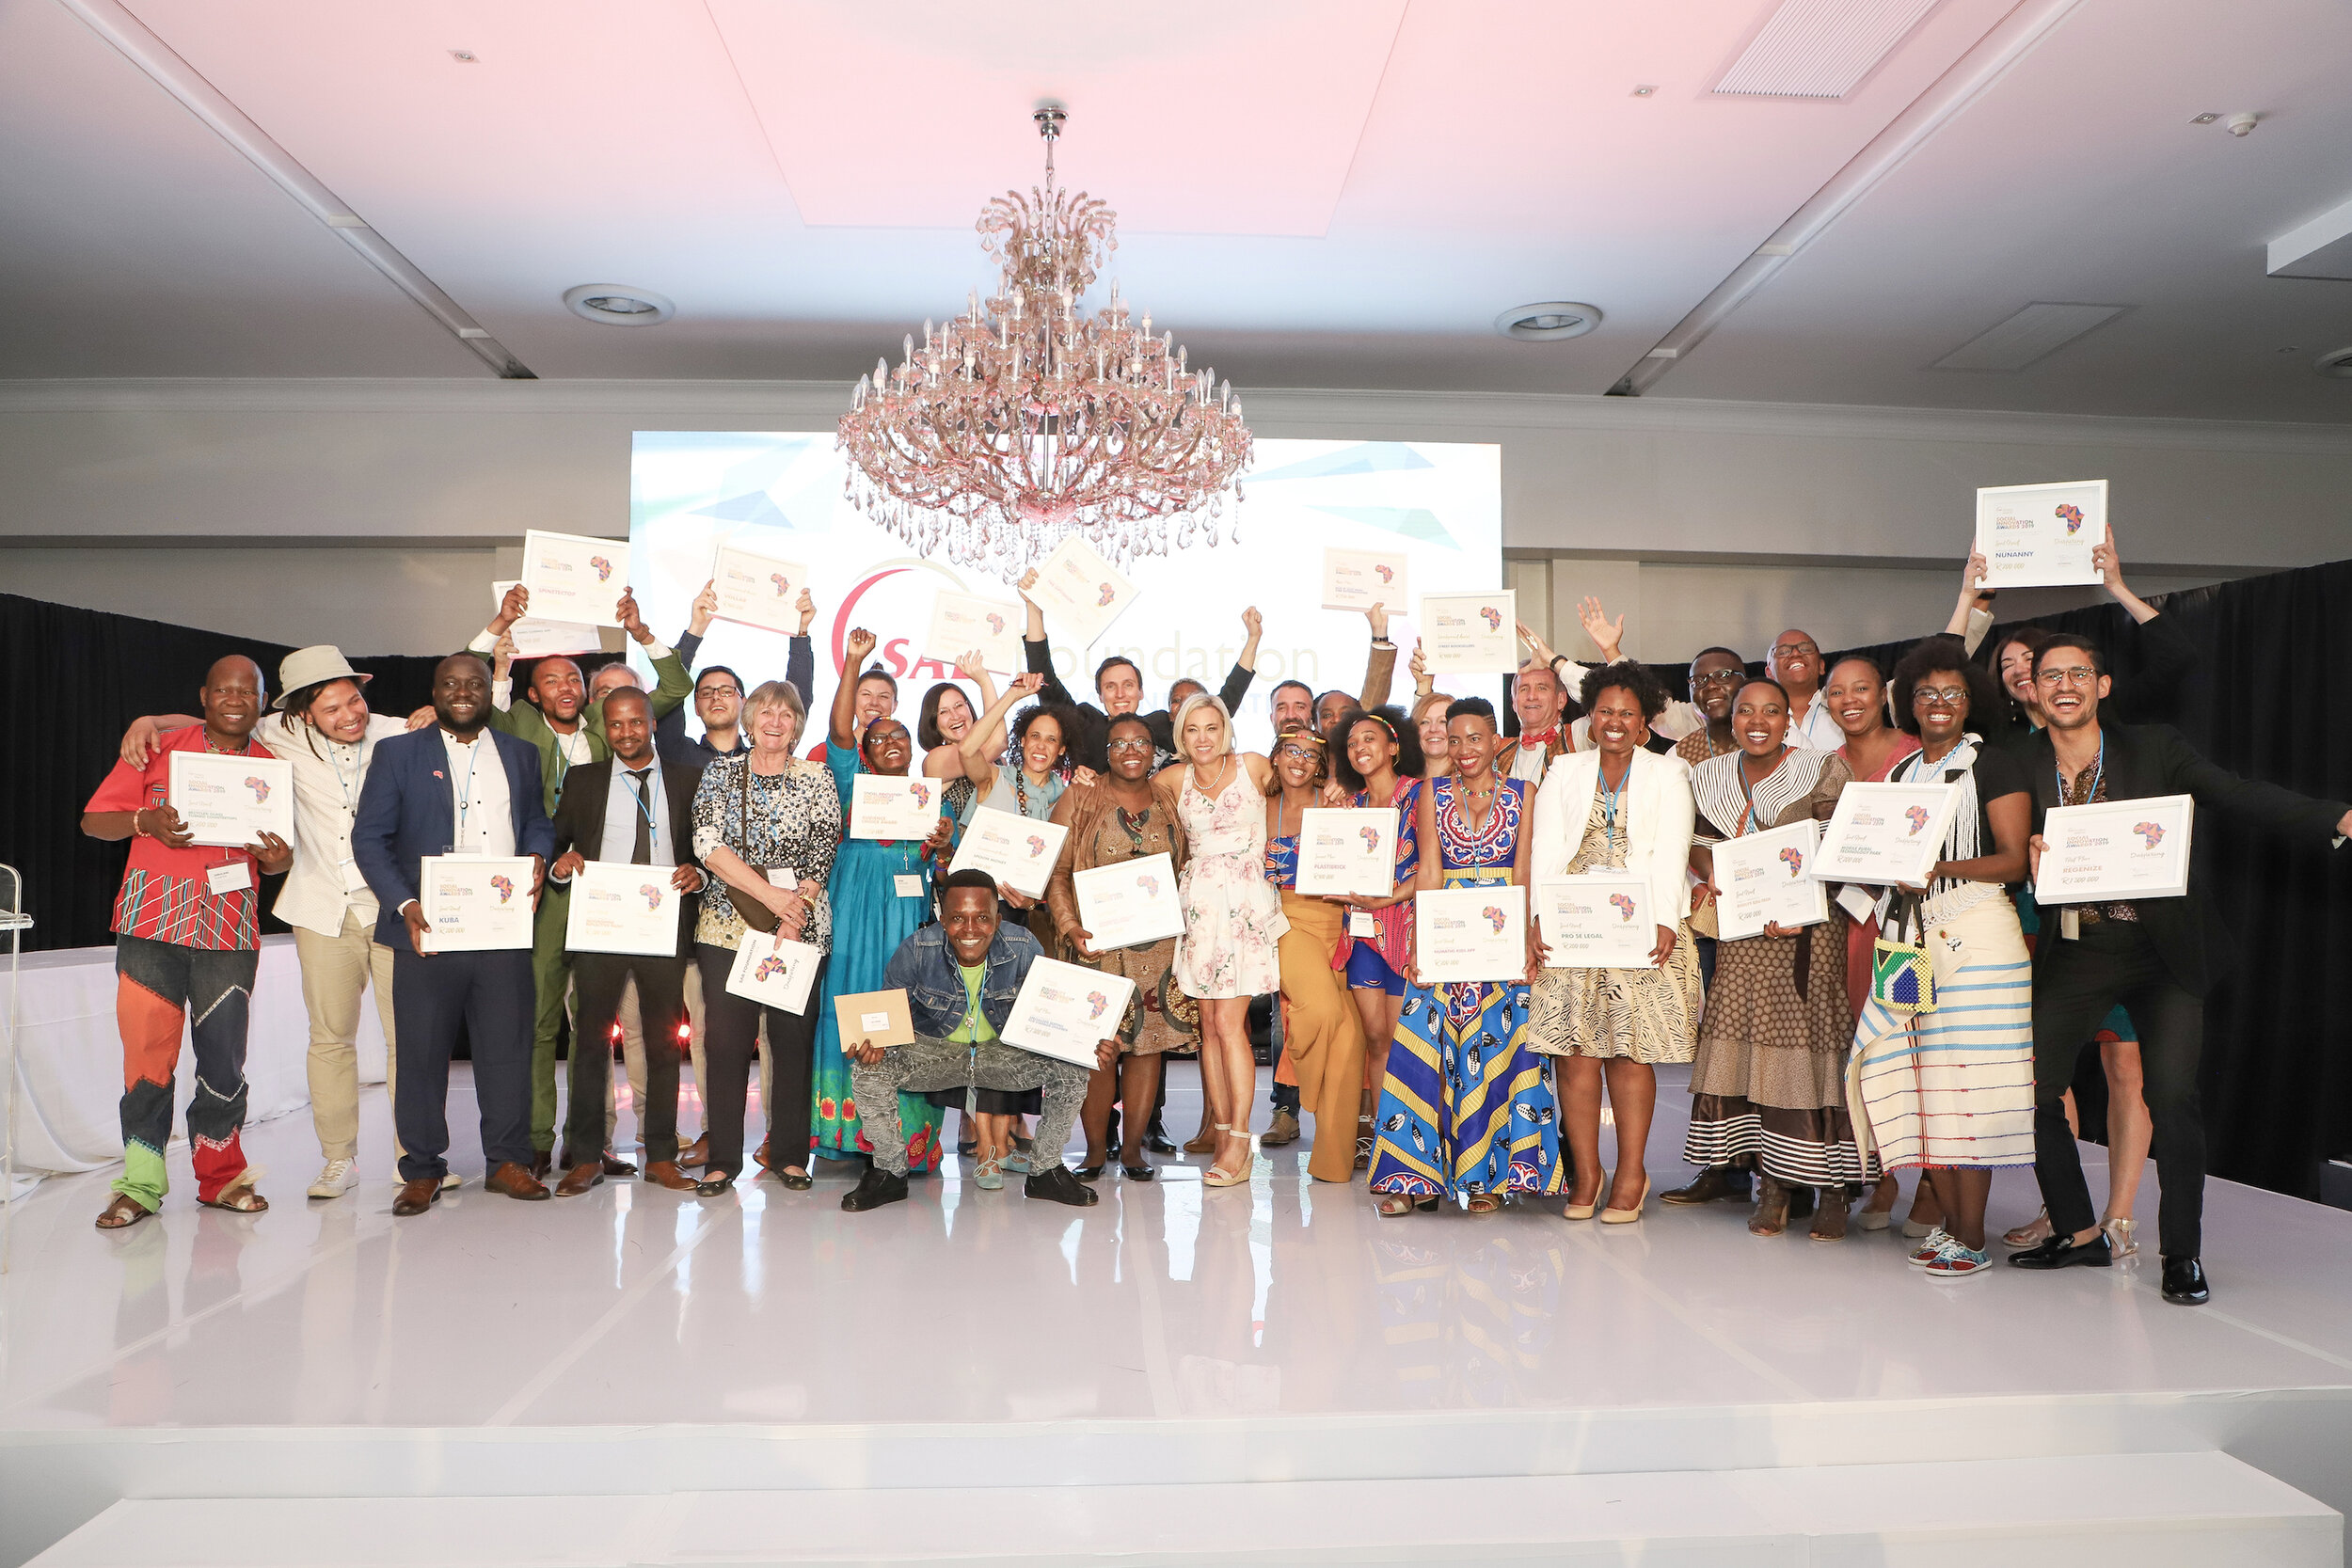 The SAB Foundation Social Innovation & Disability Empowerment Awards winners at last night's awards held in Johannesburg